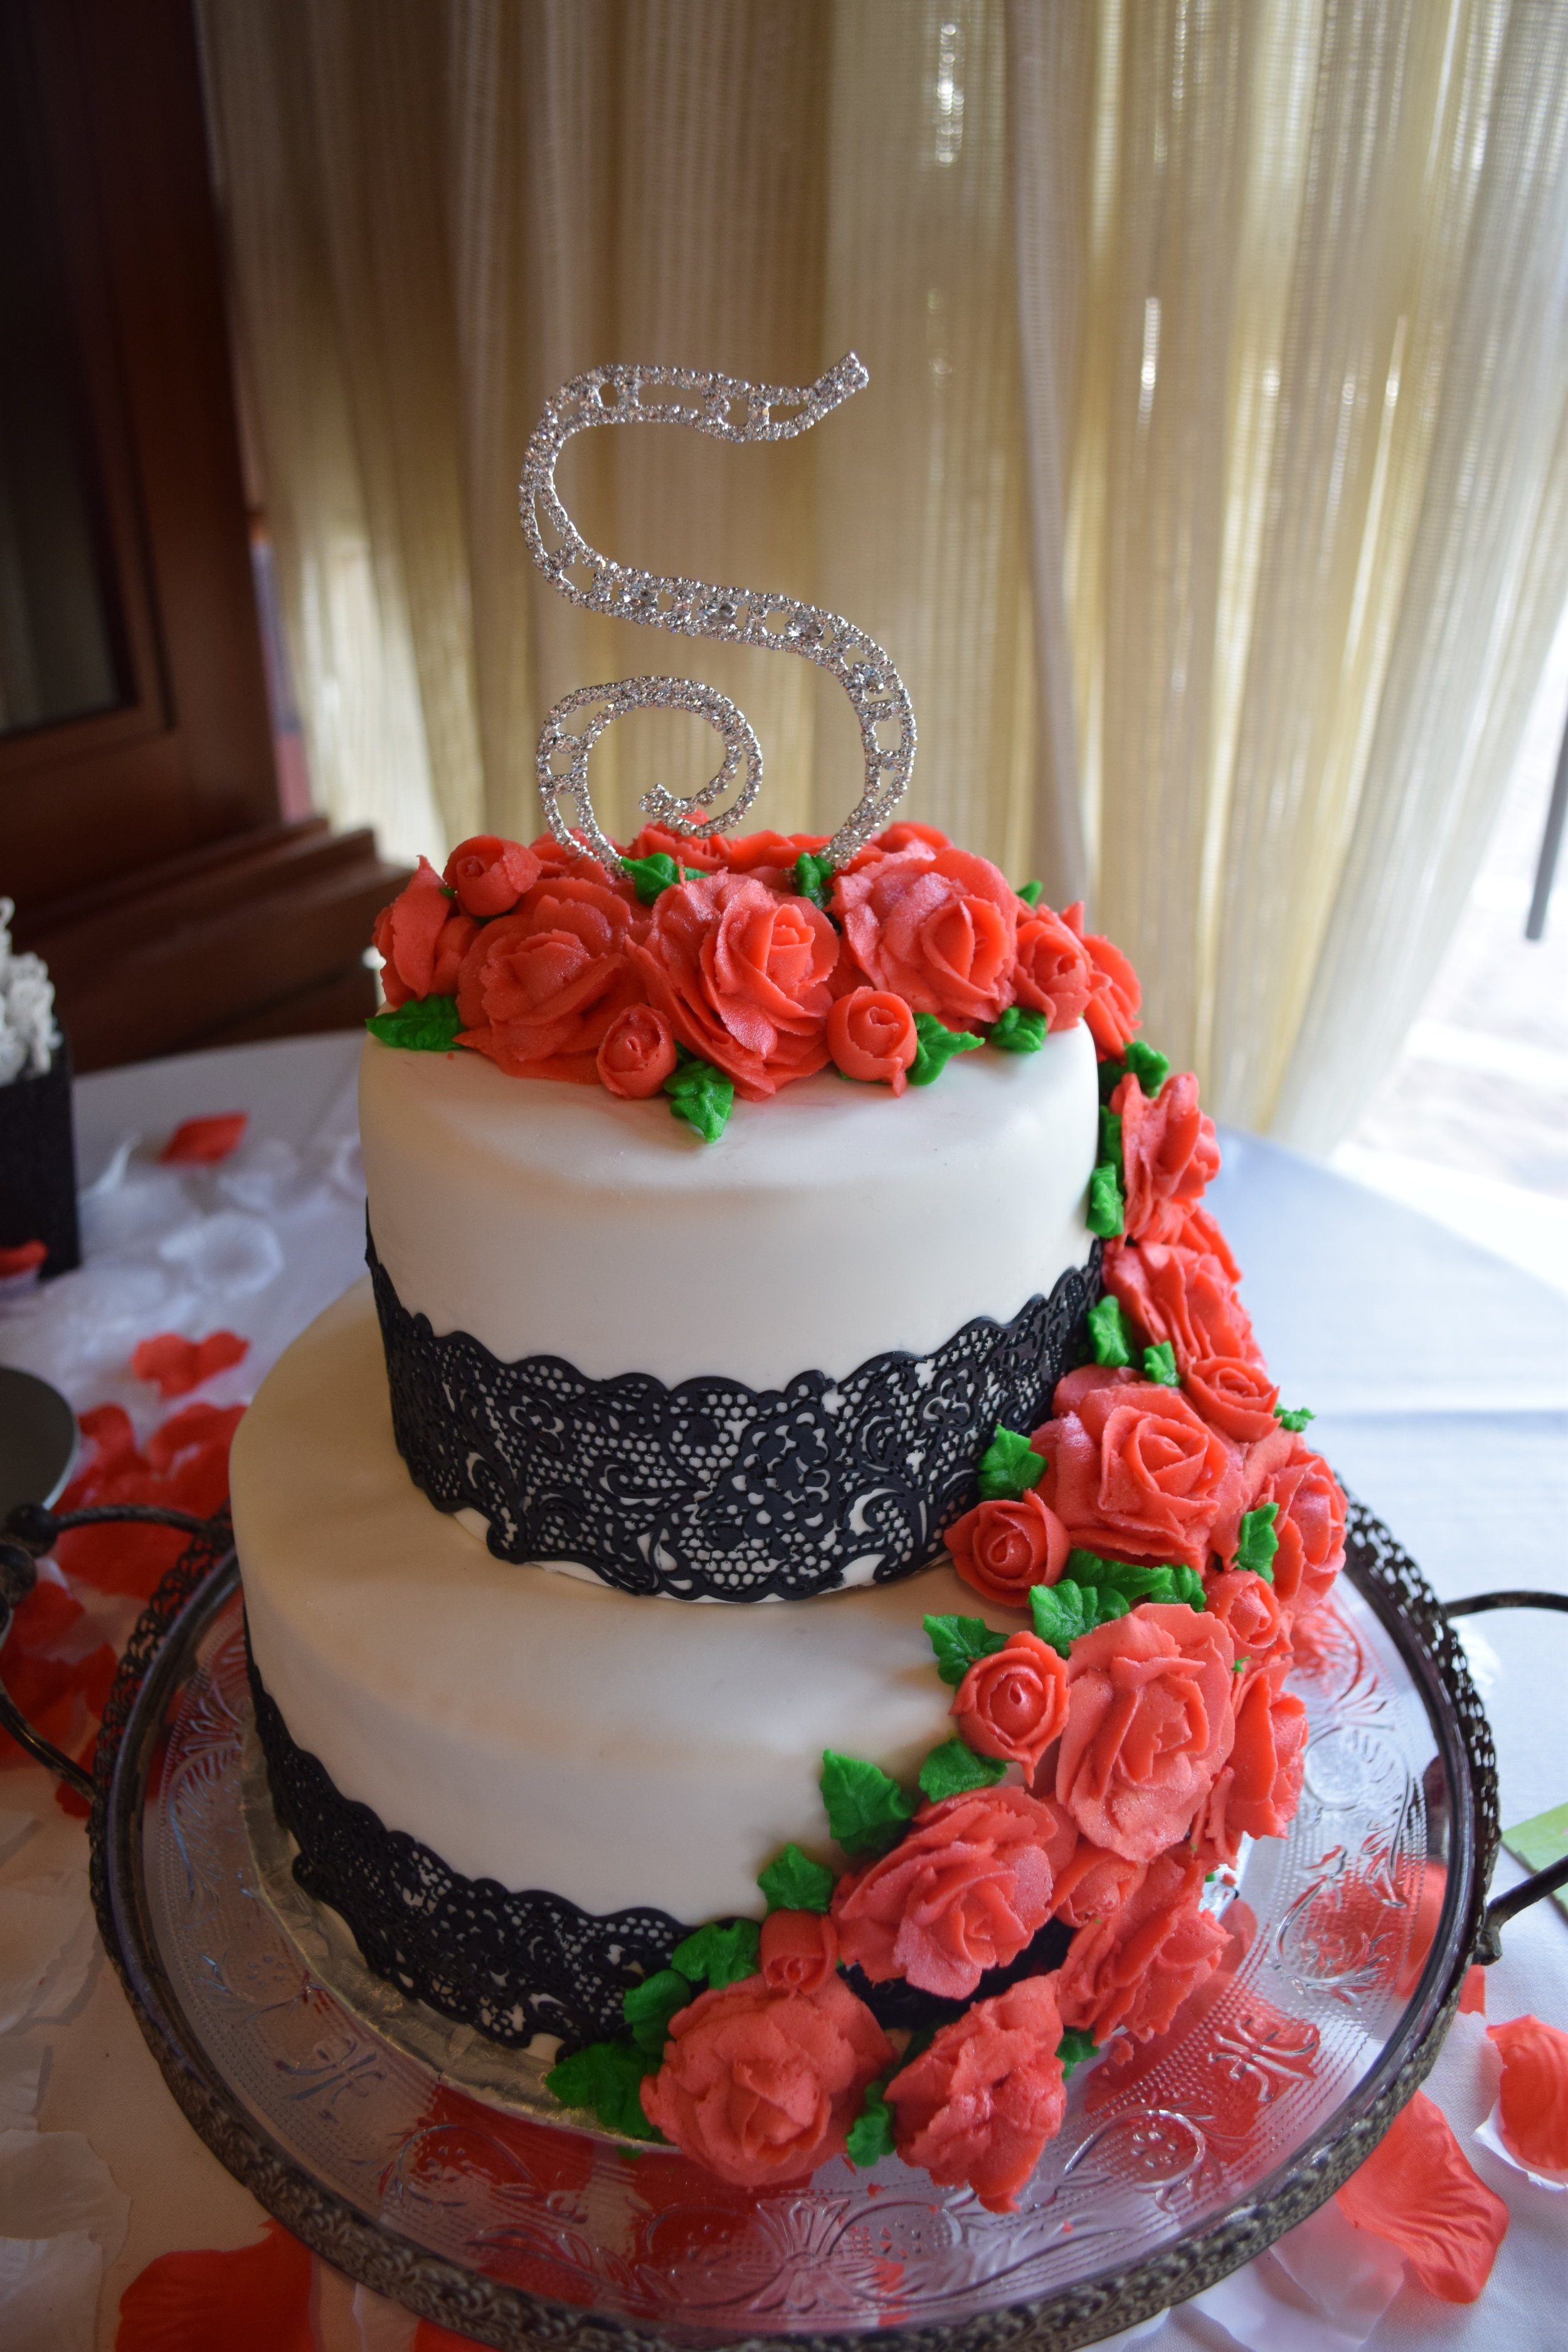 Buttercream Roses and Edible Lace on a White Fondant Background